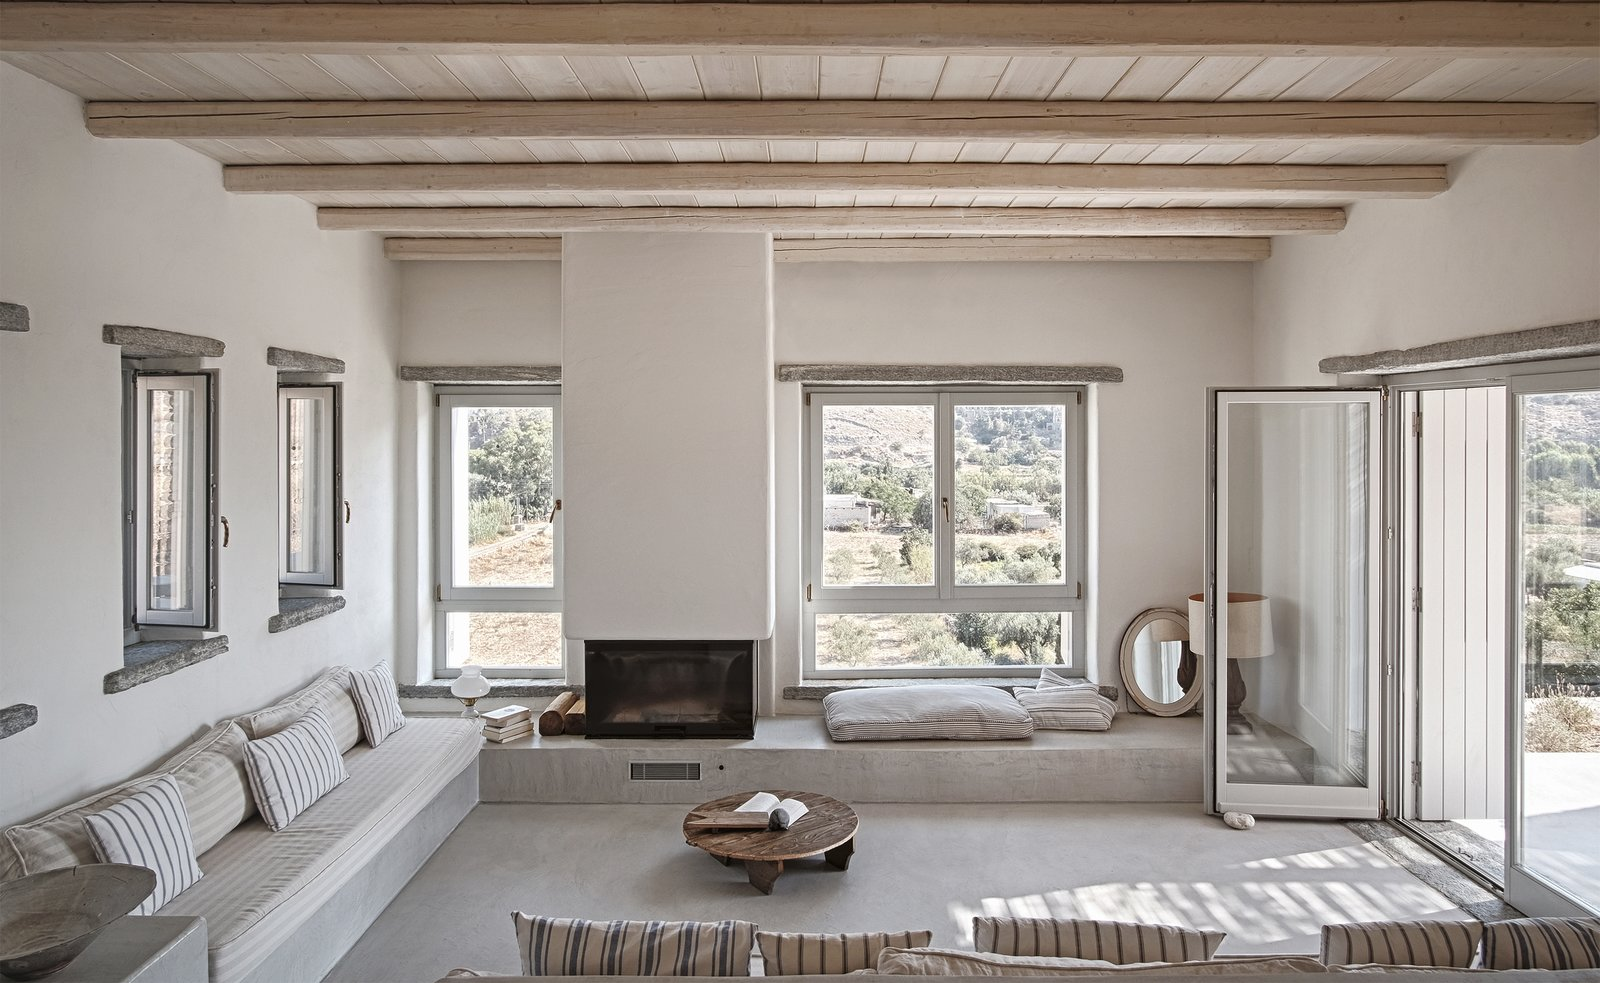 Living area Tagged: Living Room, Bench, Coffee Tables, Concrete Floor, Standard Layout Fireplace, and Wood Burning Fireplace.  ROCKSPLIT house by COMETA ARCHITECTS